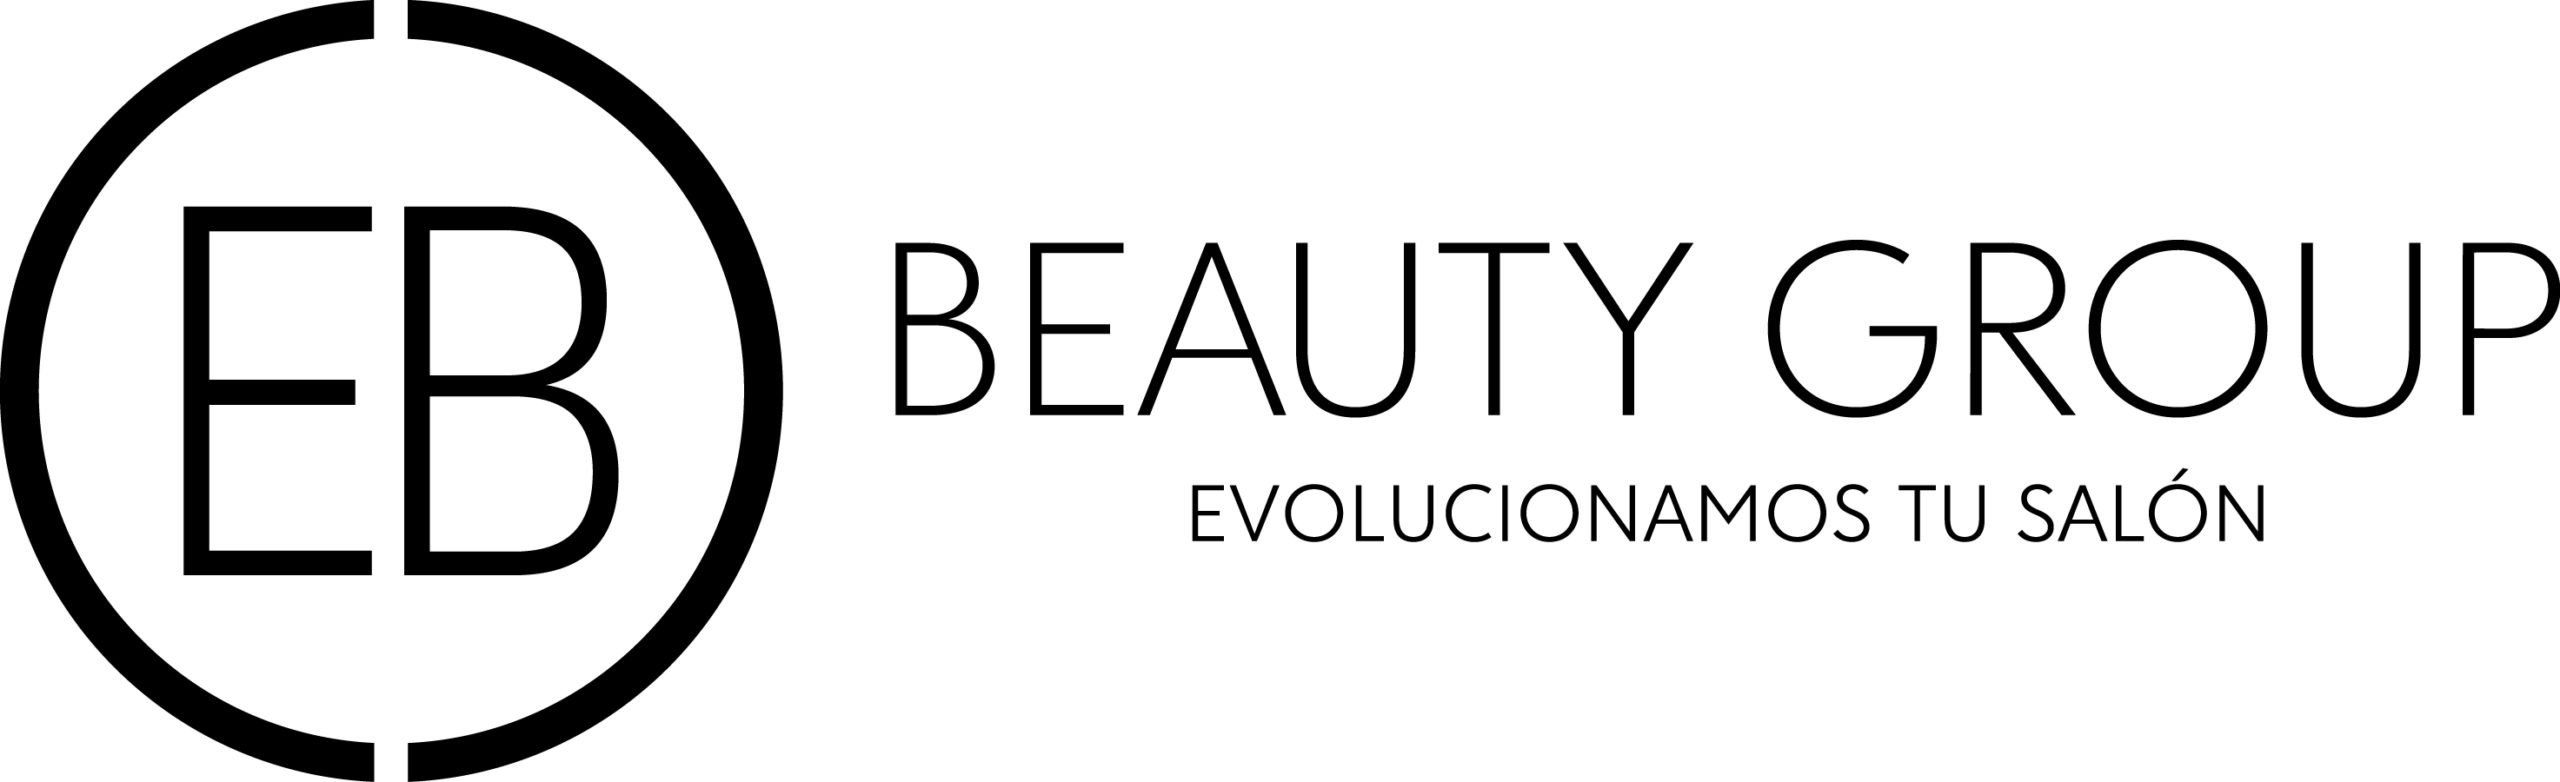 EB Beauty Group